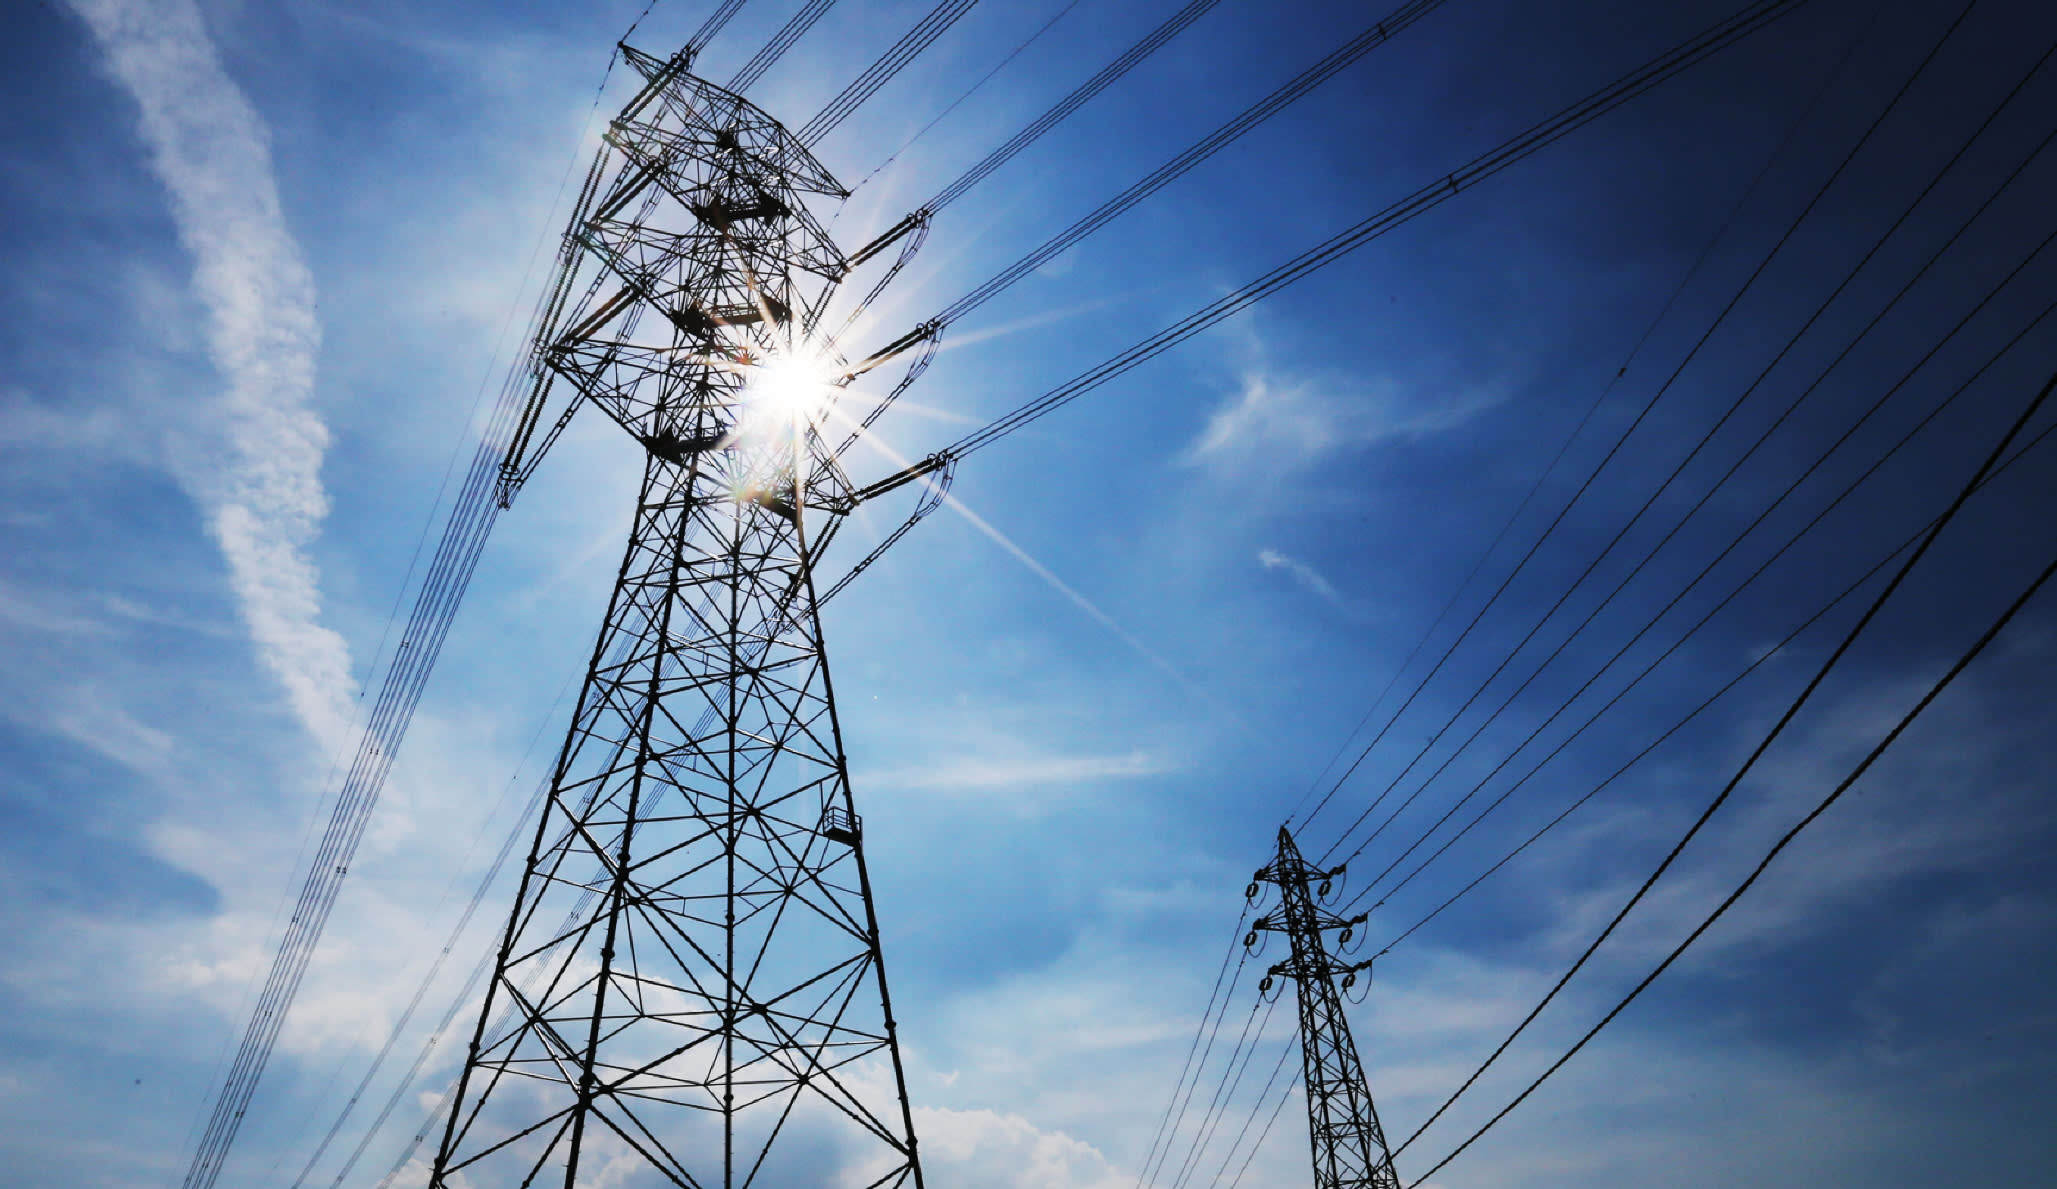 Review Petition of the Haryana Electricity Regulatory Commission (Conduct of Business) Regulations, 2019